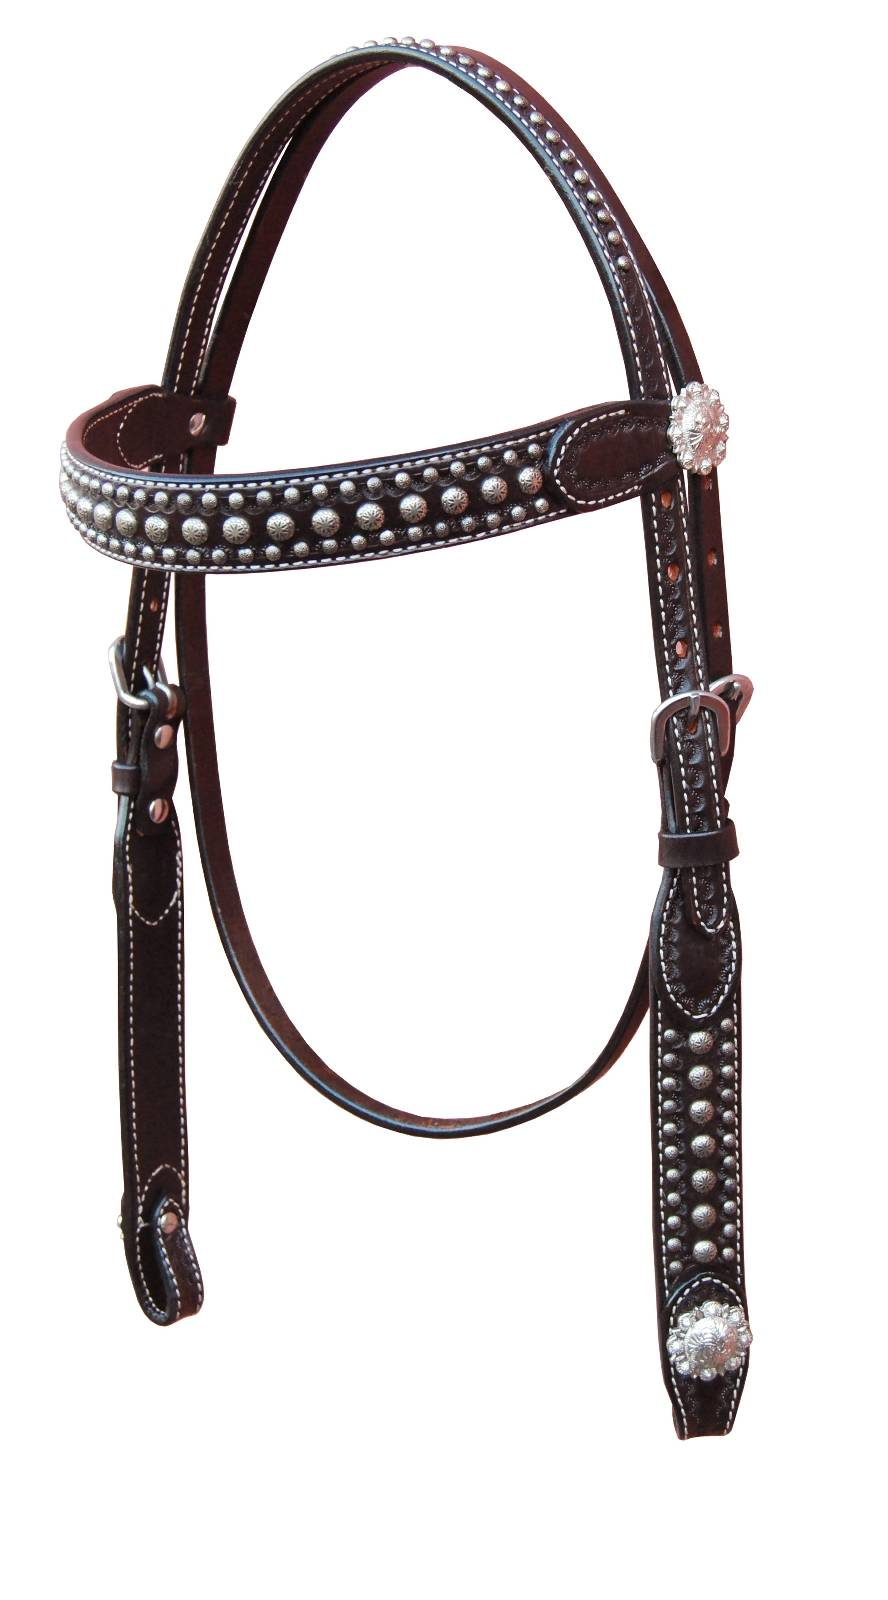 Turn-Two Browband Headstall - Galvestine